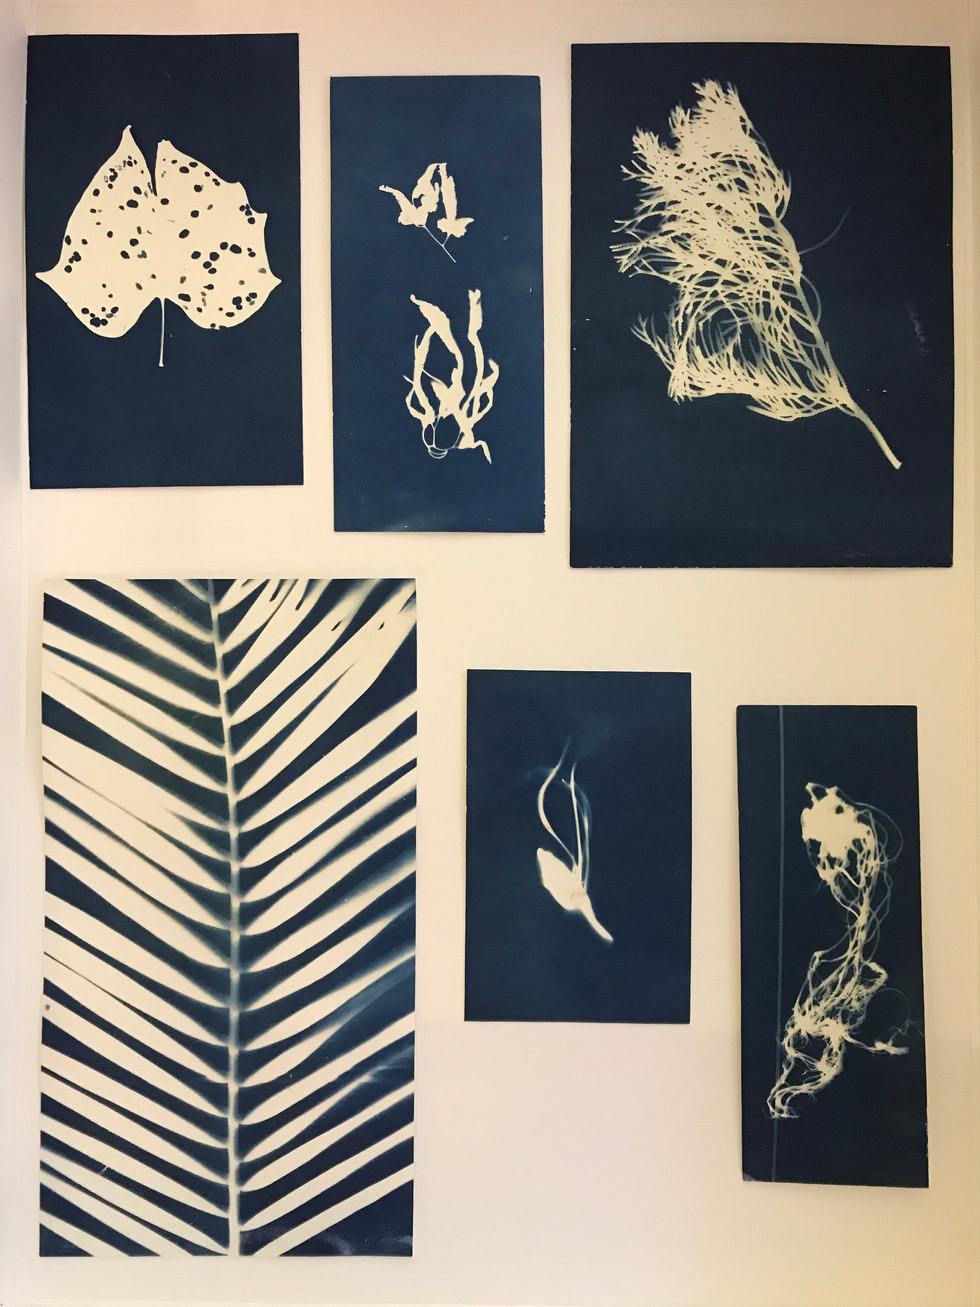 LAW YUK MUI 'On Junk Bay, The Plant' (1990-present), duration: 2 mins 56 secs. Cyanotype of plants from Junk Bay